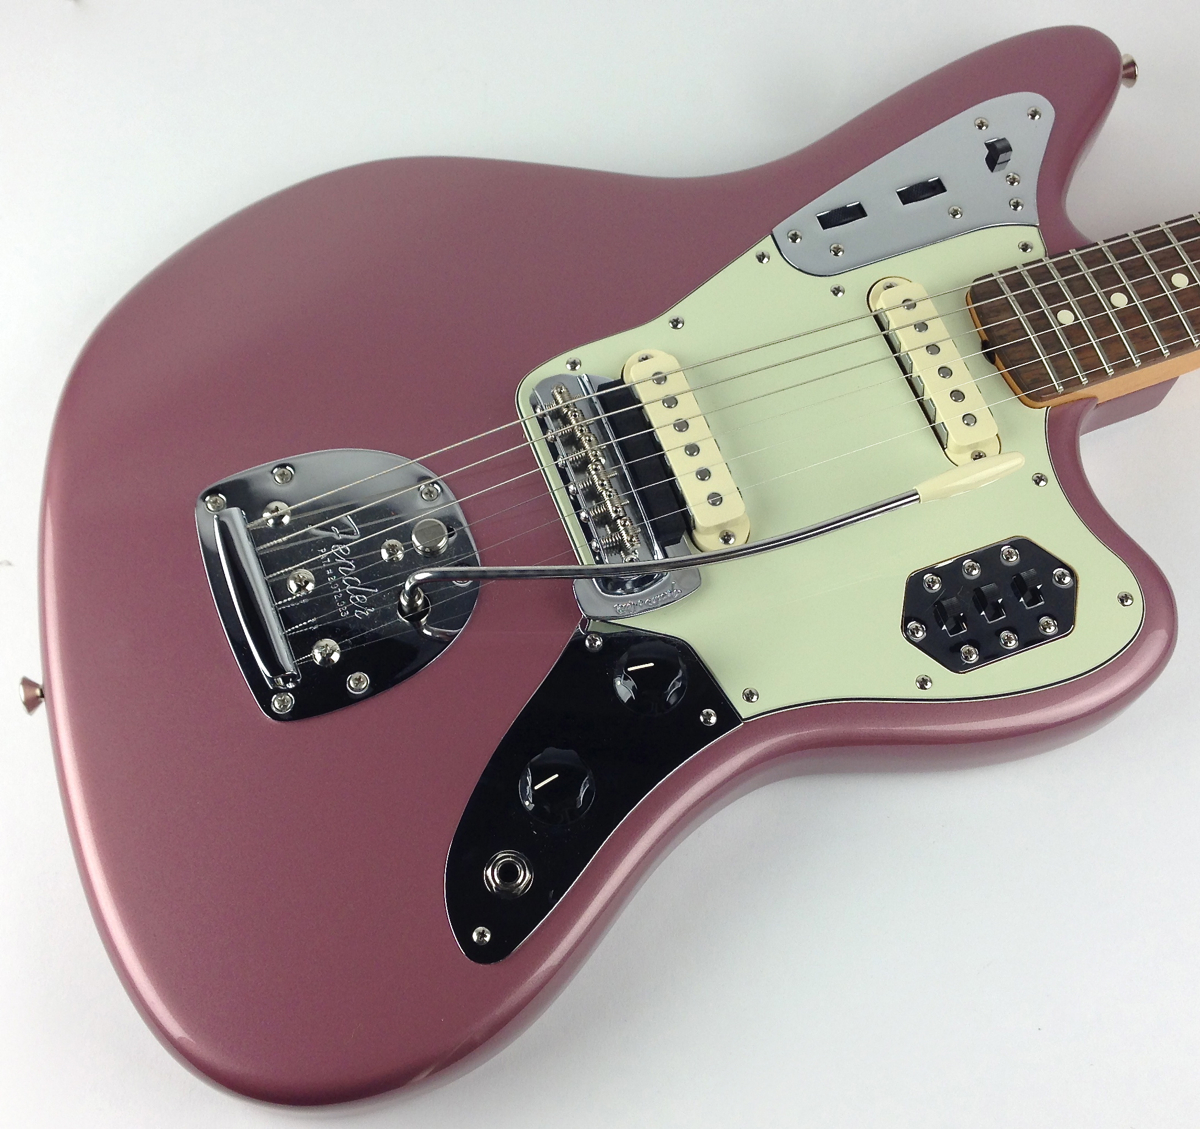 Fender 52 Telecaster Wiring Diagram Free Download Andy Summers Vintage Mustang